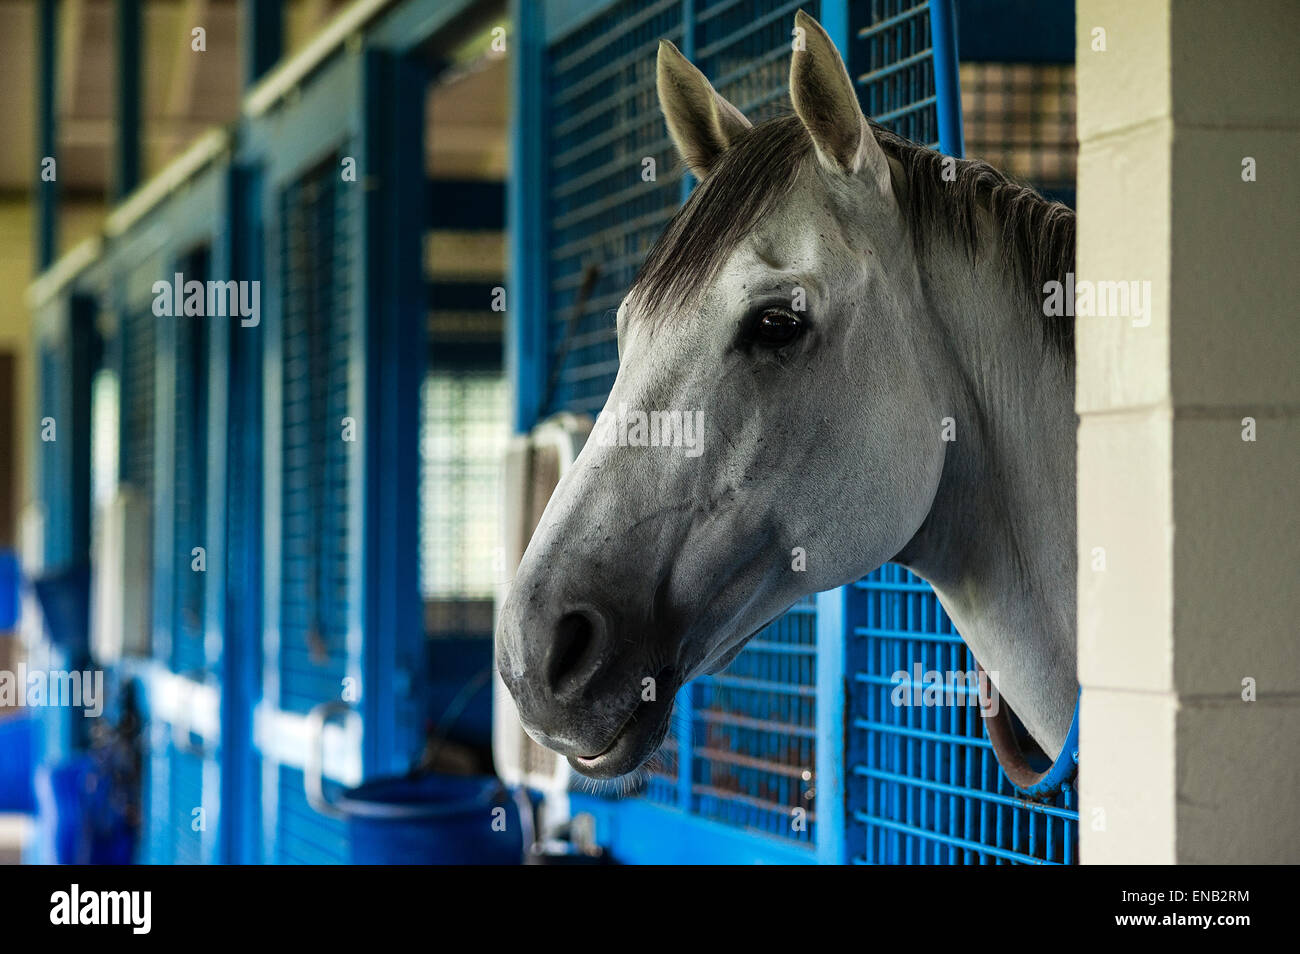 Race horse in stable. - Stock Image